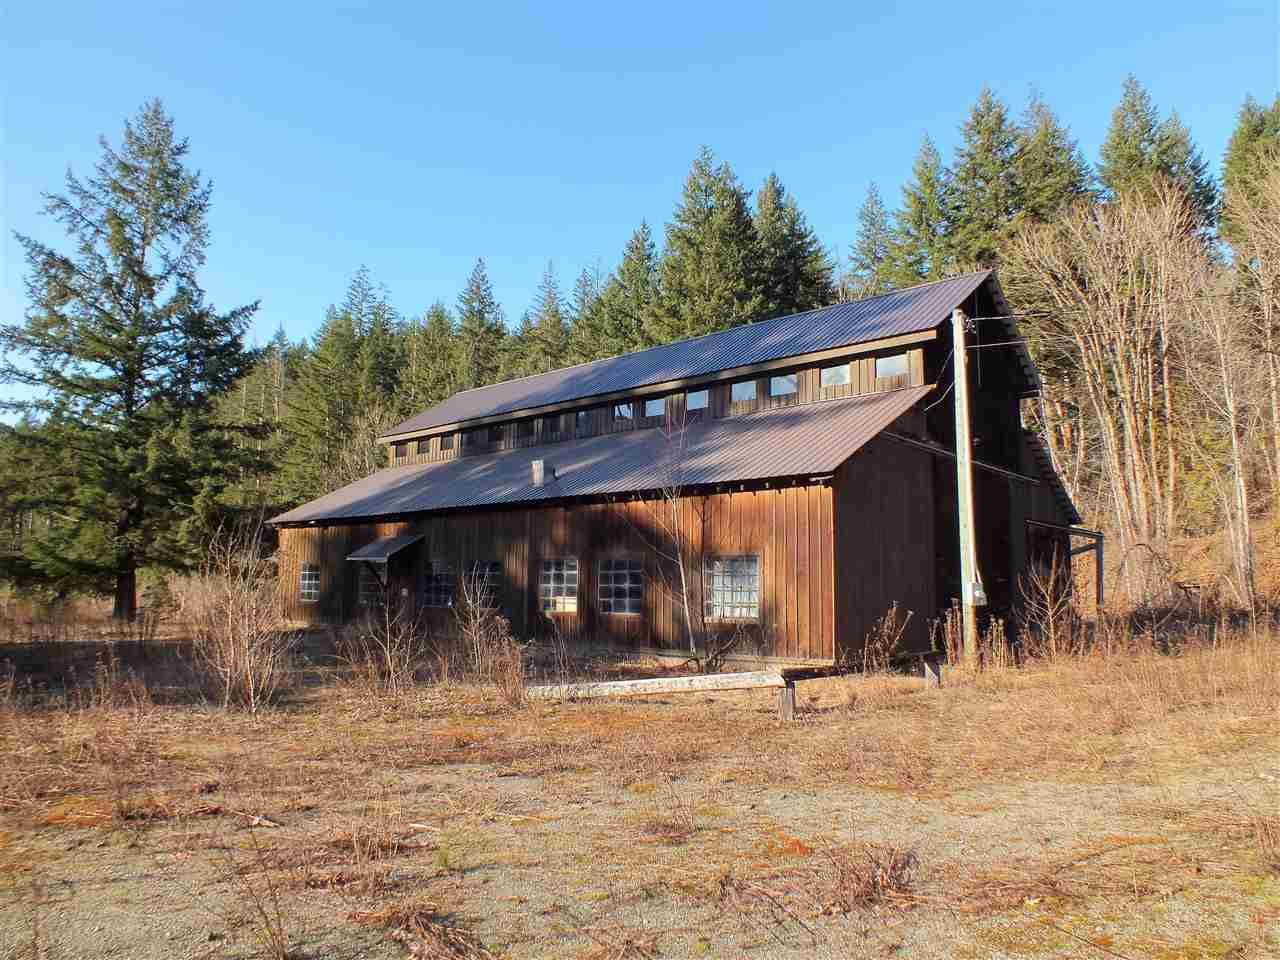 Main Photo: 21902 UNION BAR Road in Hope: Hope Kawkawa Lake Land for sale : MLS®# R2467753